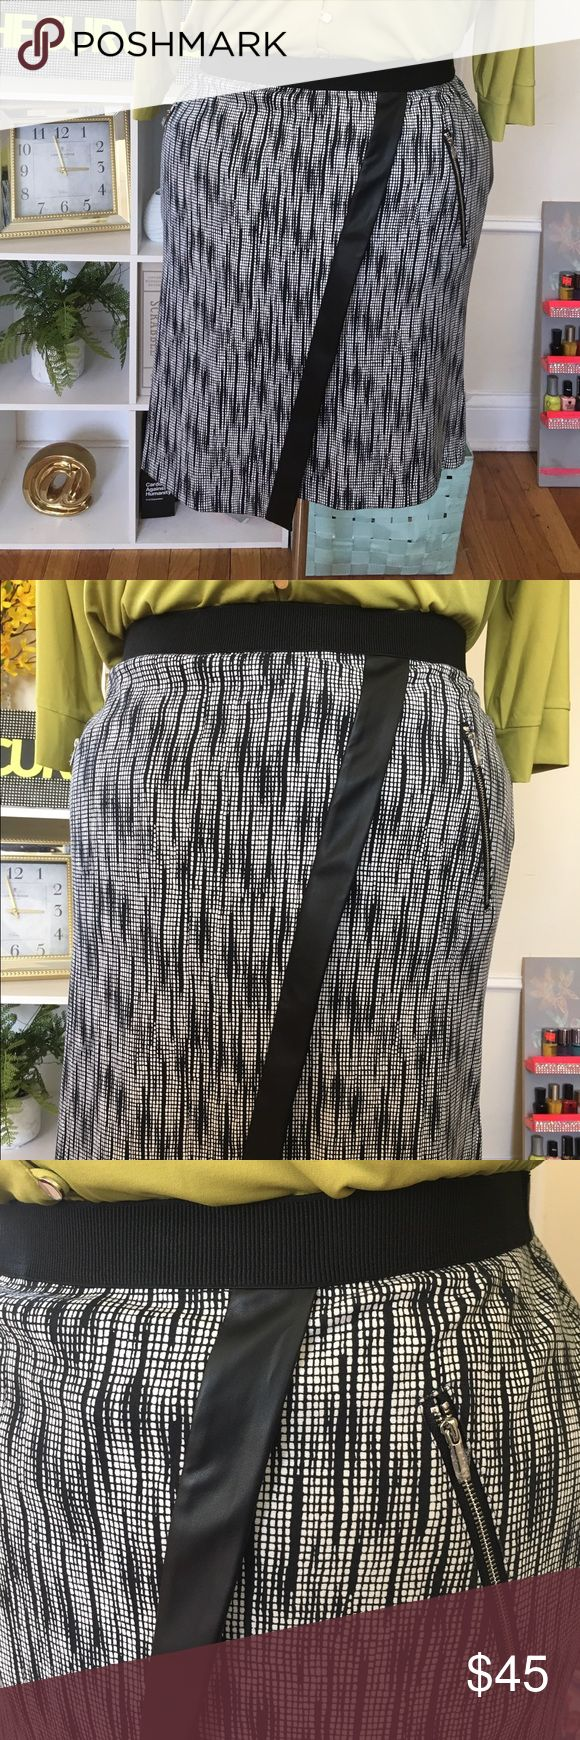 "Asymmetrical Skirt NWT & NWOT - 2 sizes Available - 20W and 22W - Asymmetrical - Two silver zipper embellishments - Not a pocket - Purchased for clients - Returns weren't accepted - elastic waists fits very comfortable and has a nice fit - not a tight pencil skirt - ""Bauhaus Bold"" Rafaella Skirts Asymmetrical"